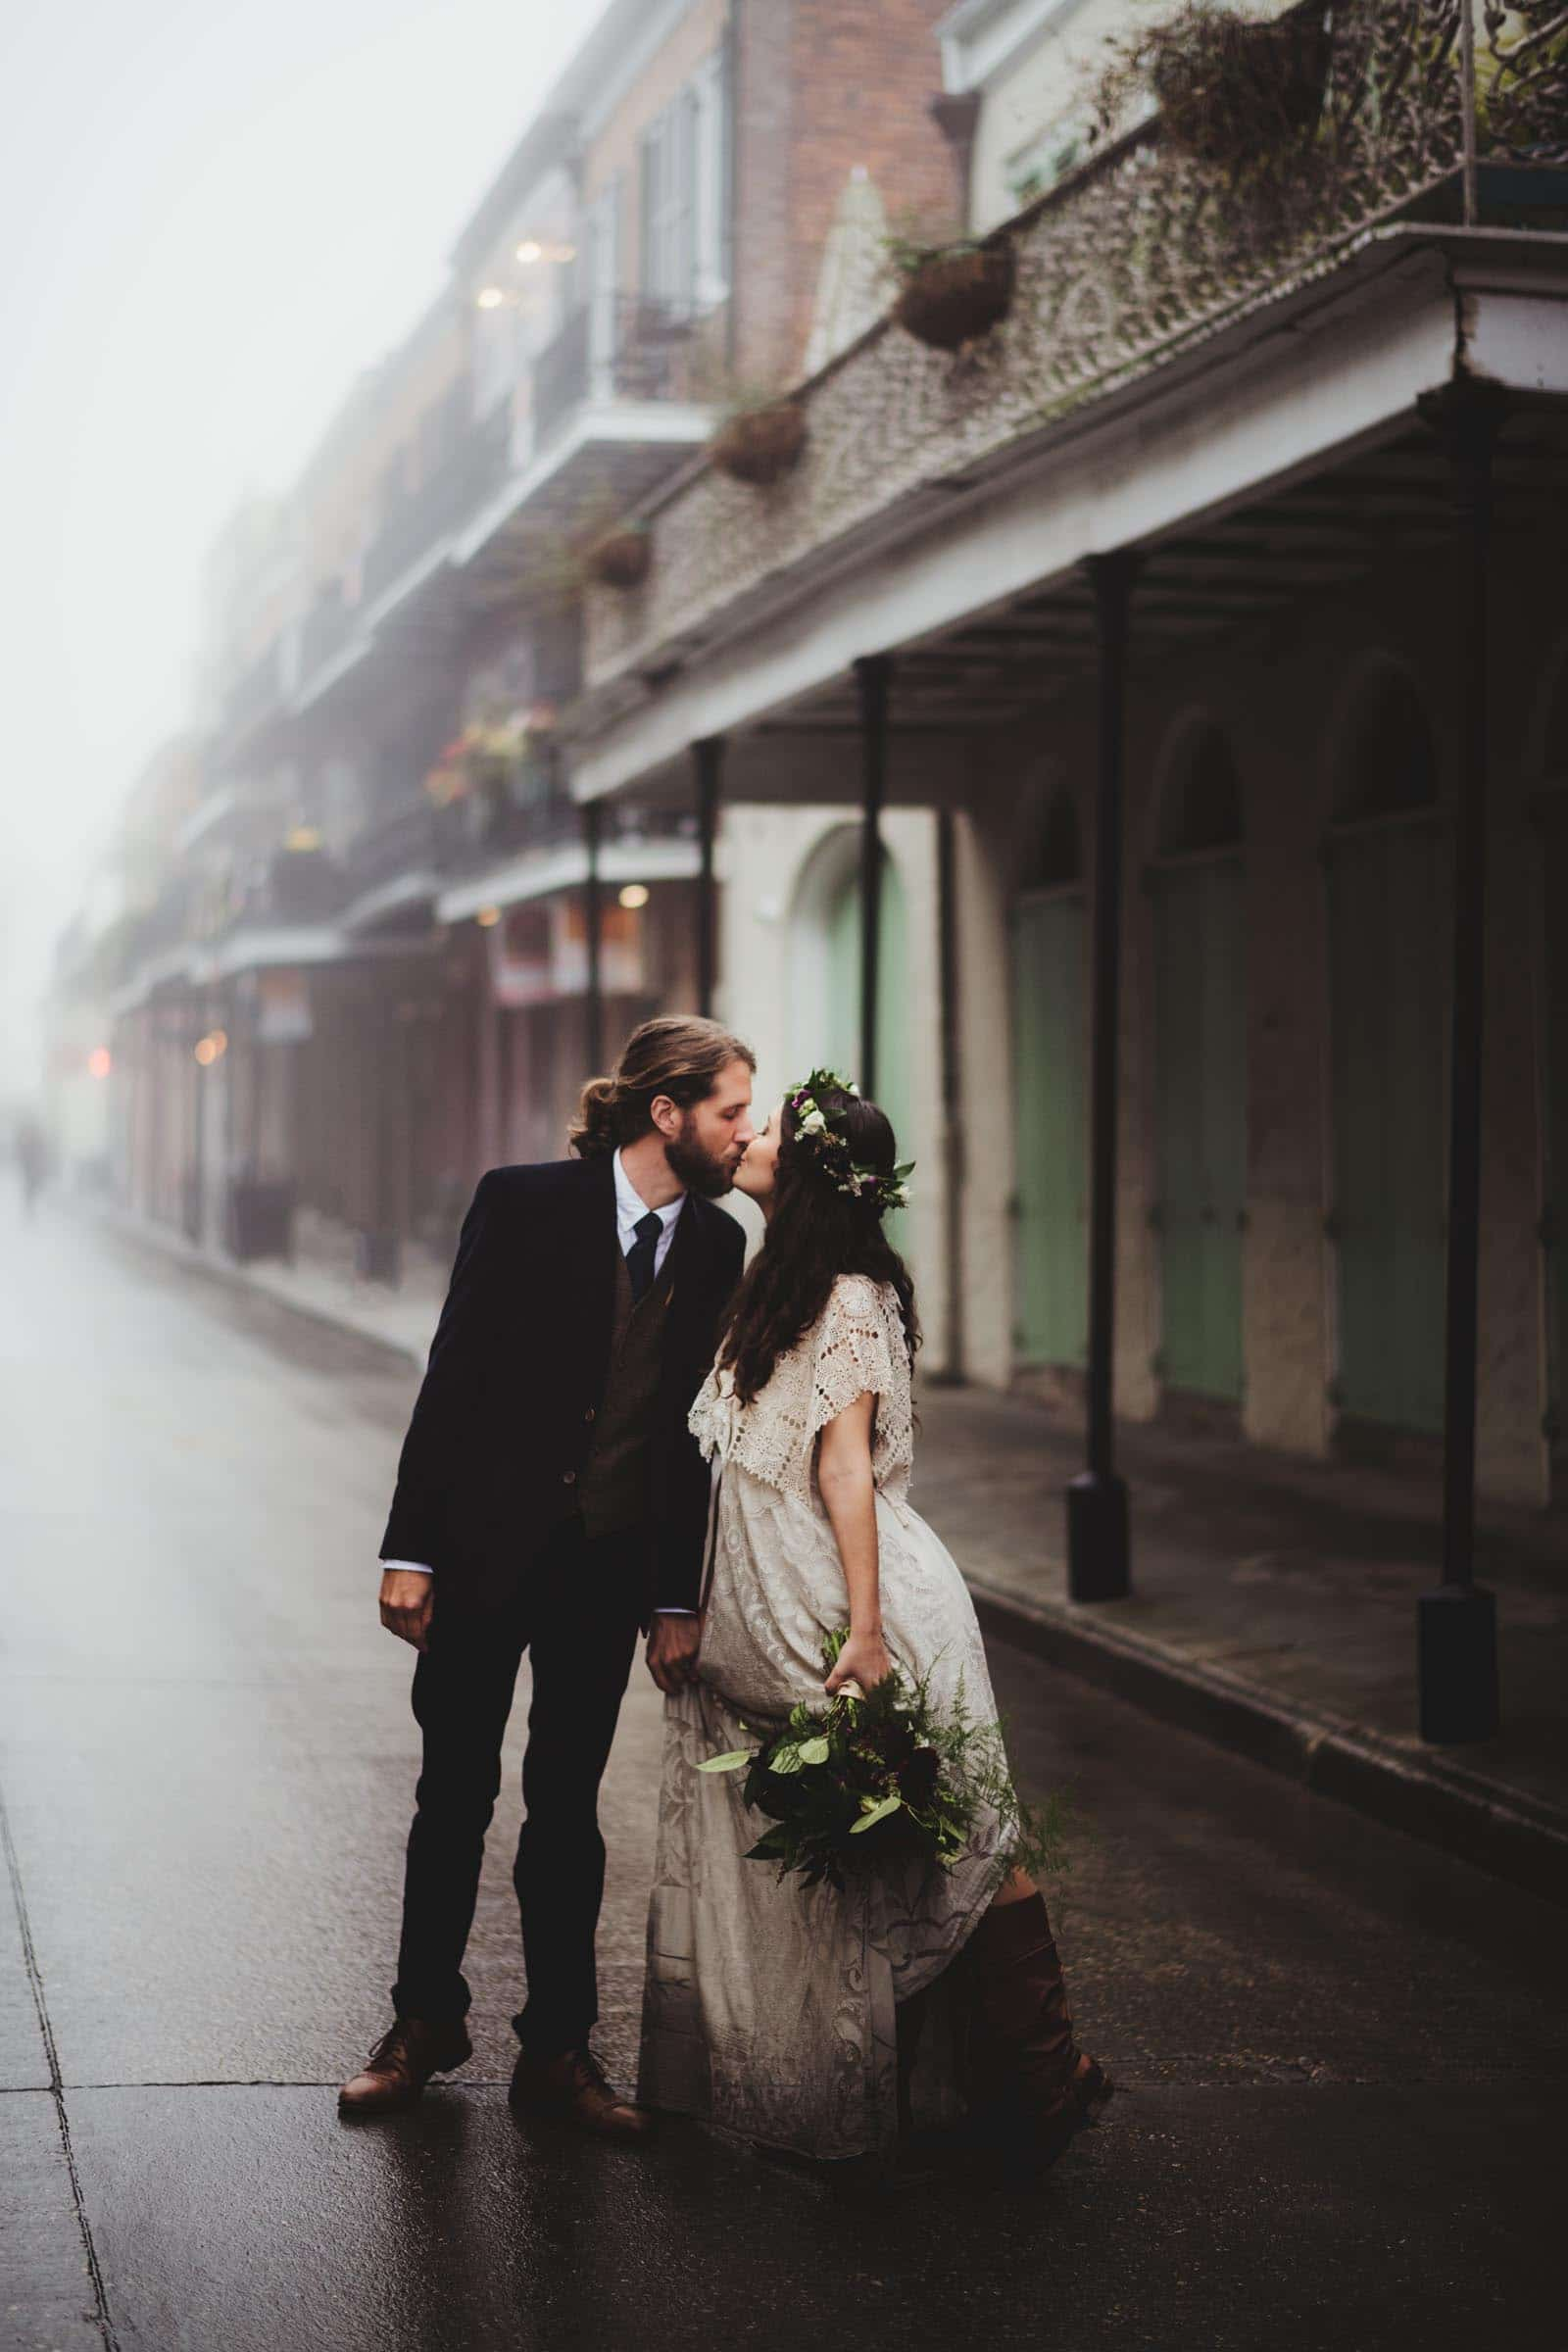 Bride Groom Kissing in Street